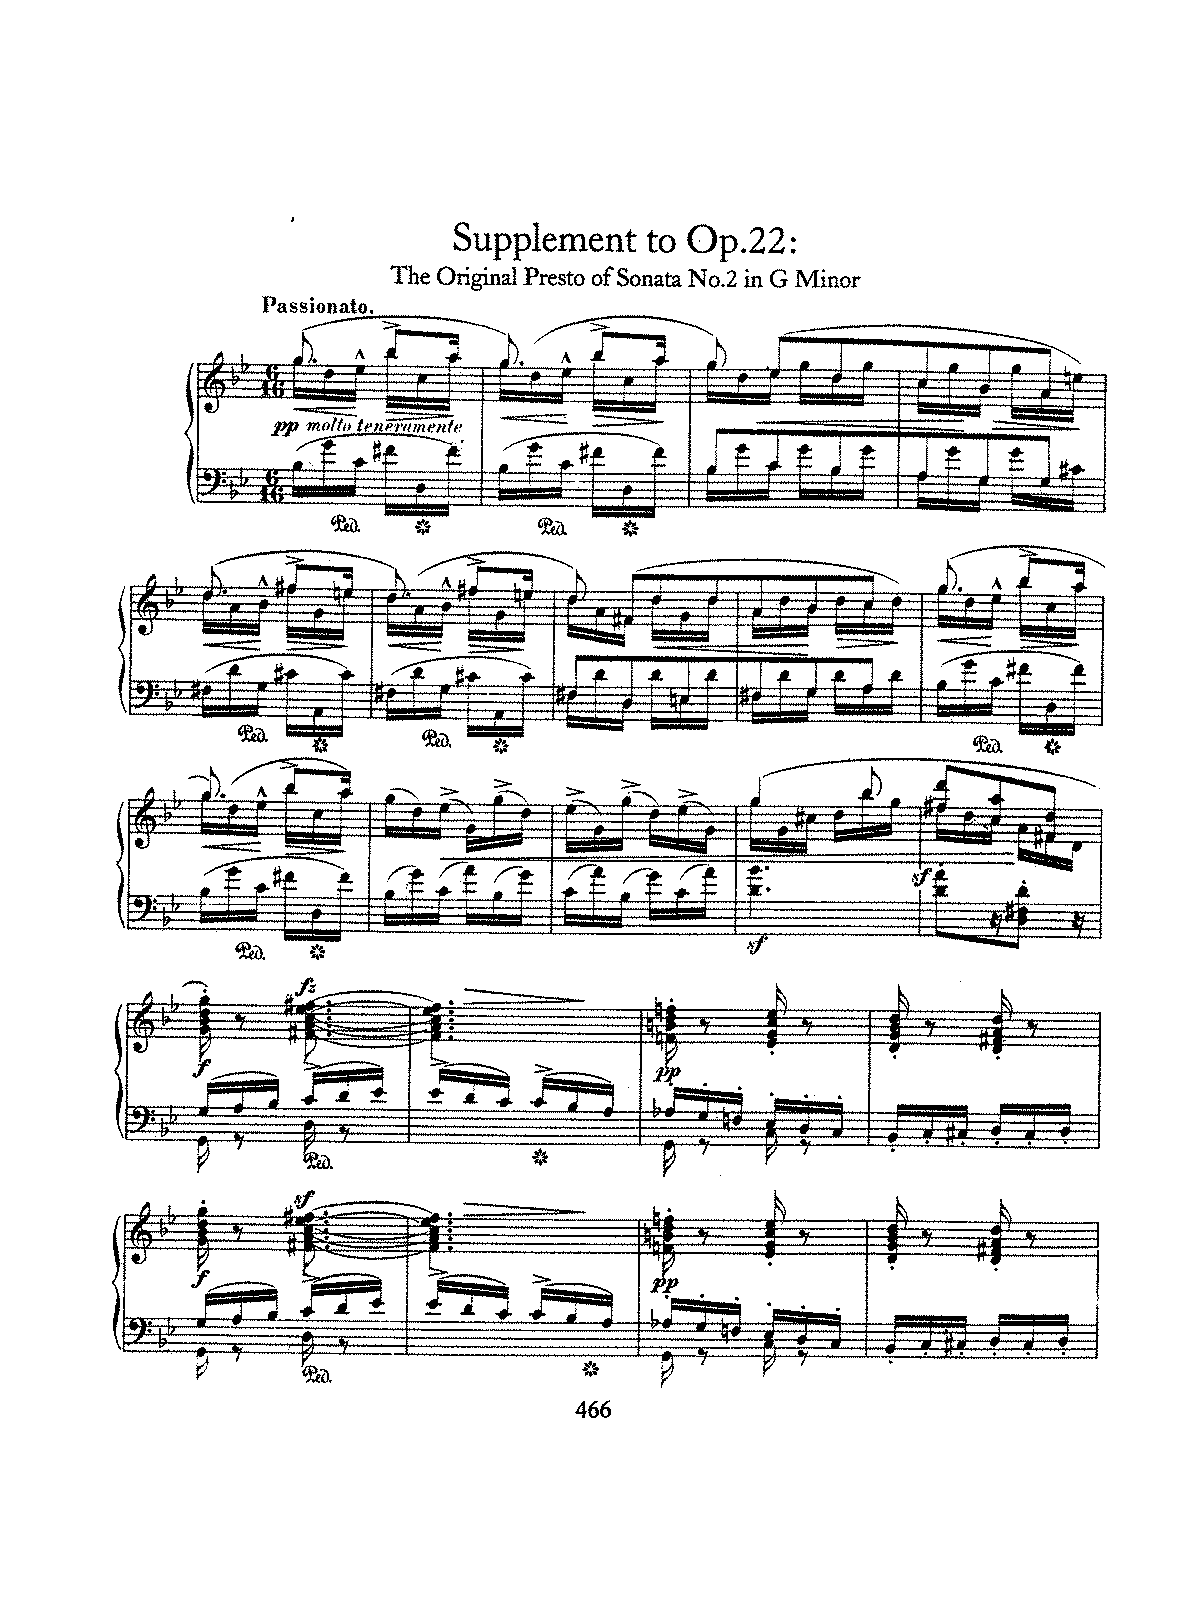 Schumann - Supplement to Op 22.pdf